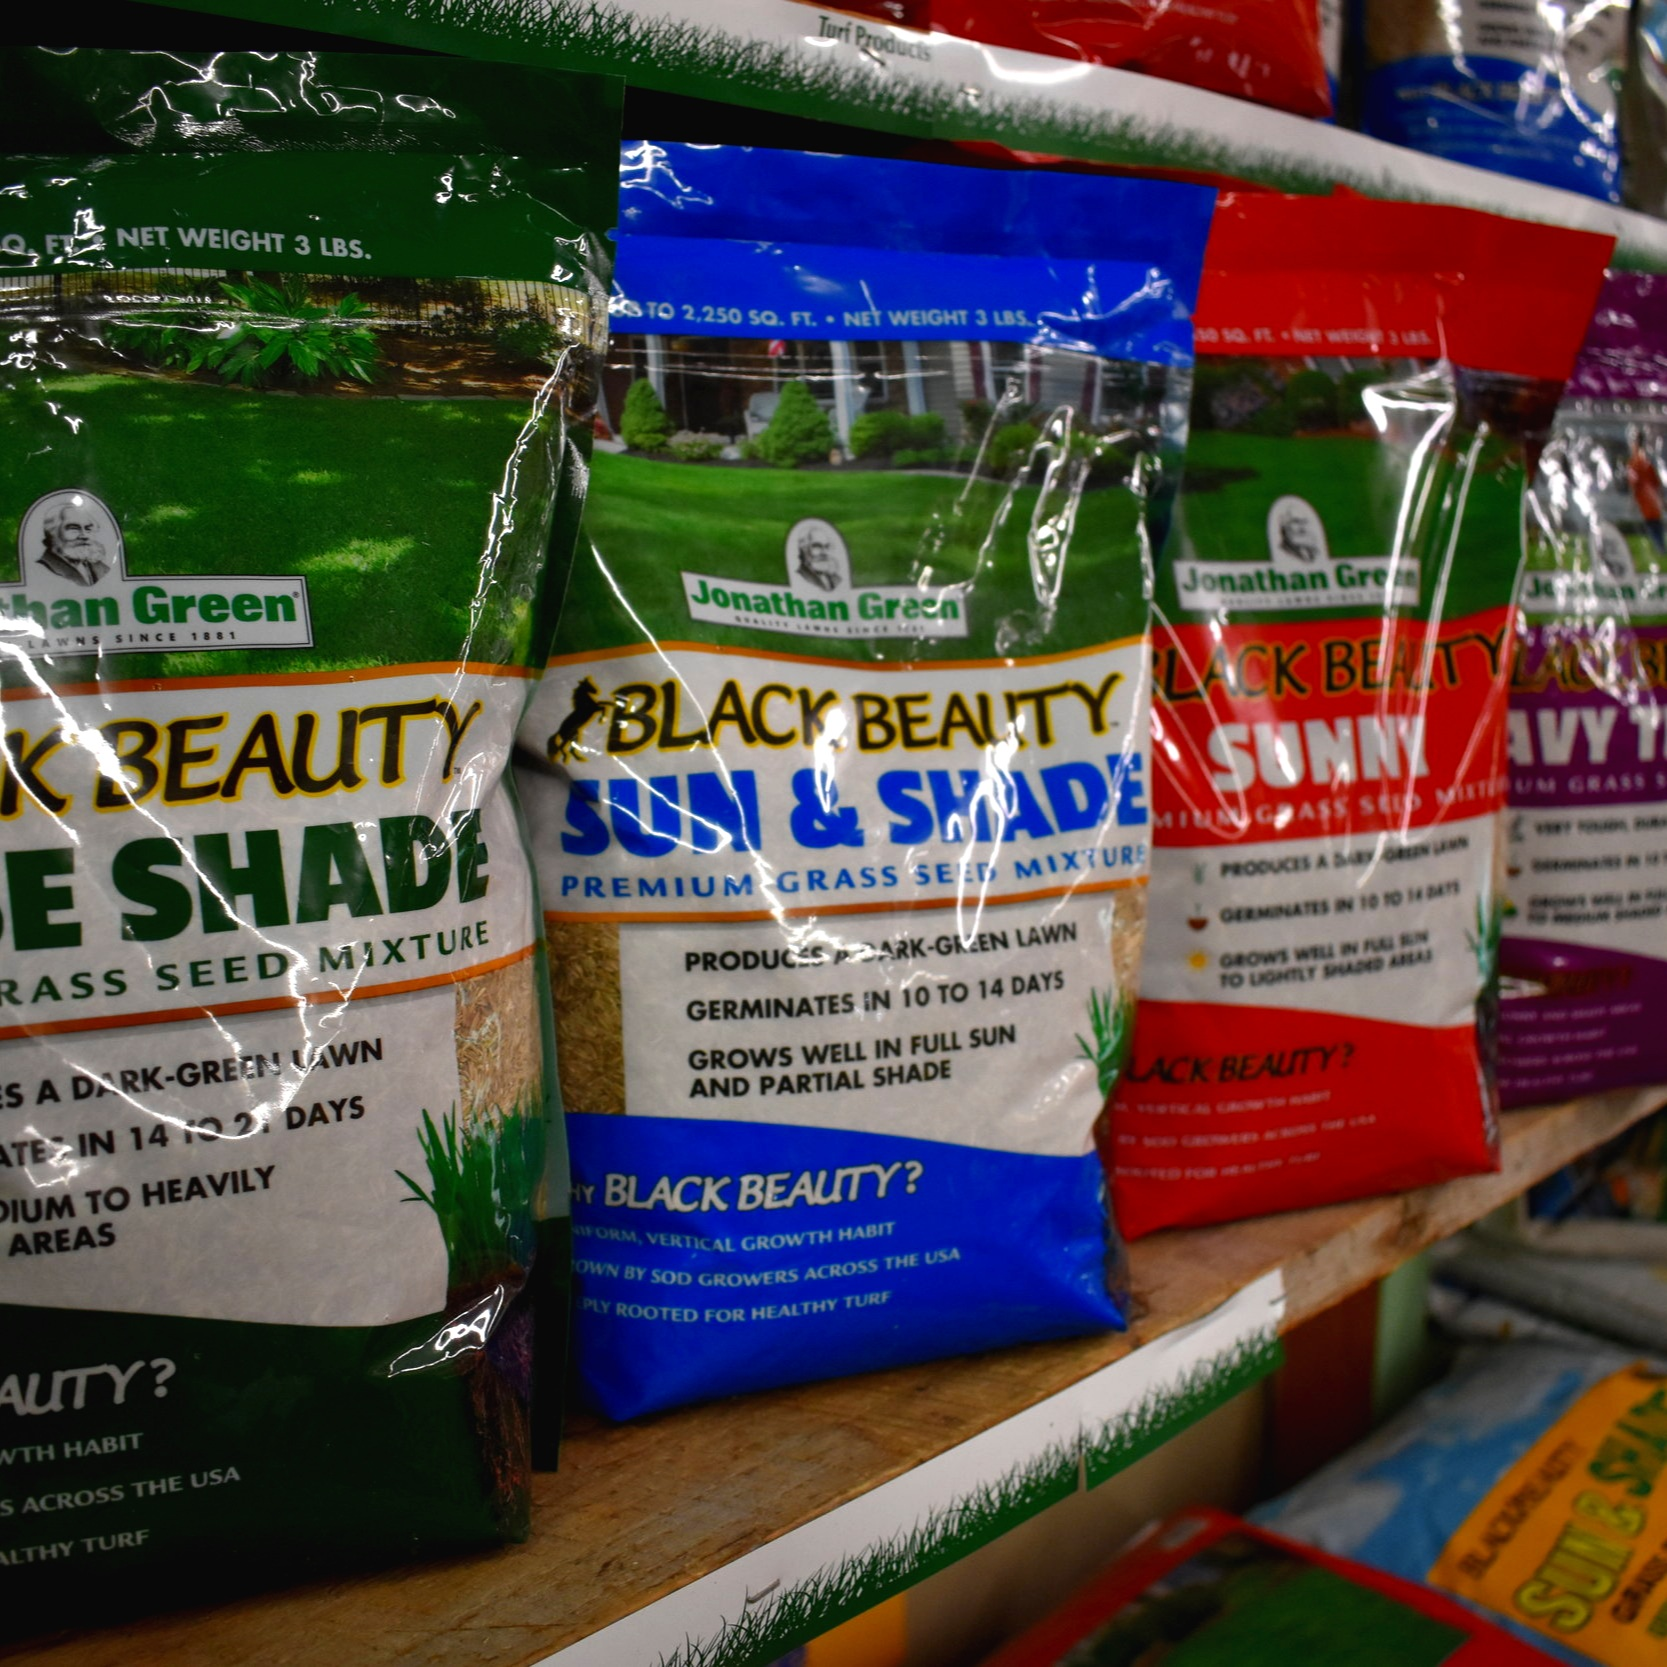 Jonathan Green Grass Seed and Fertilizers